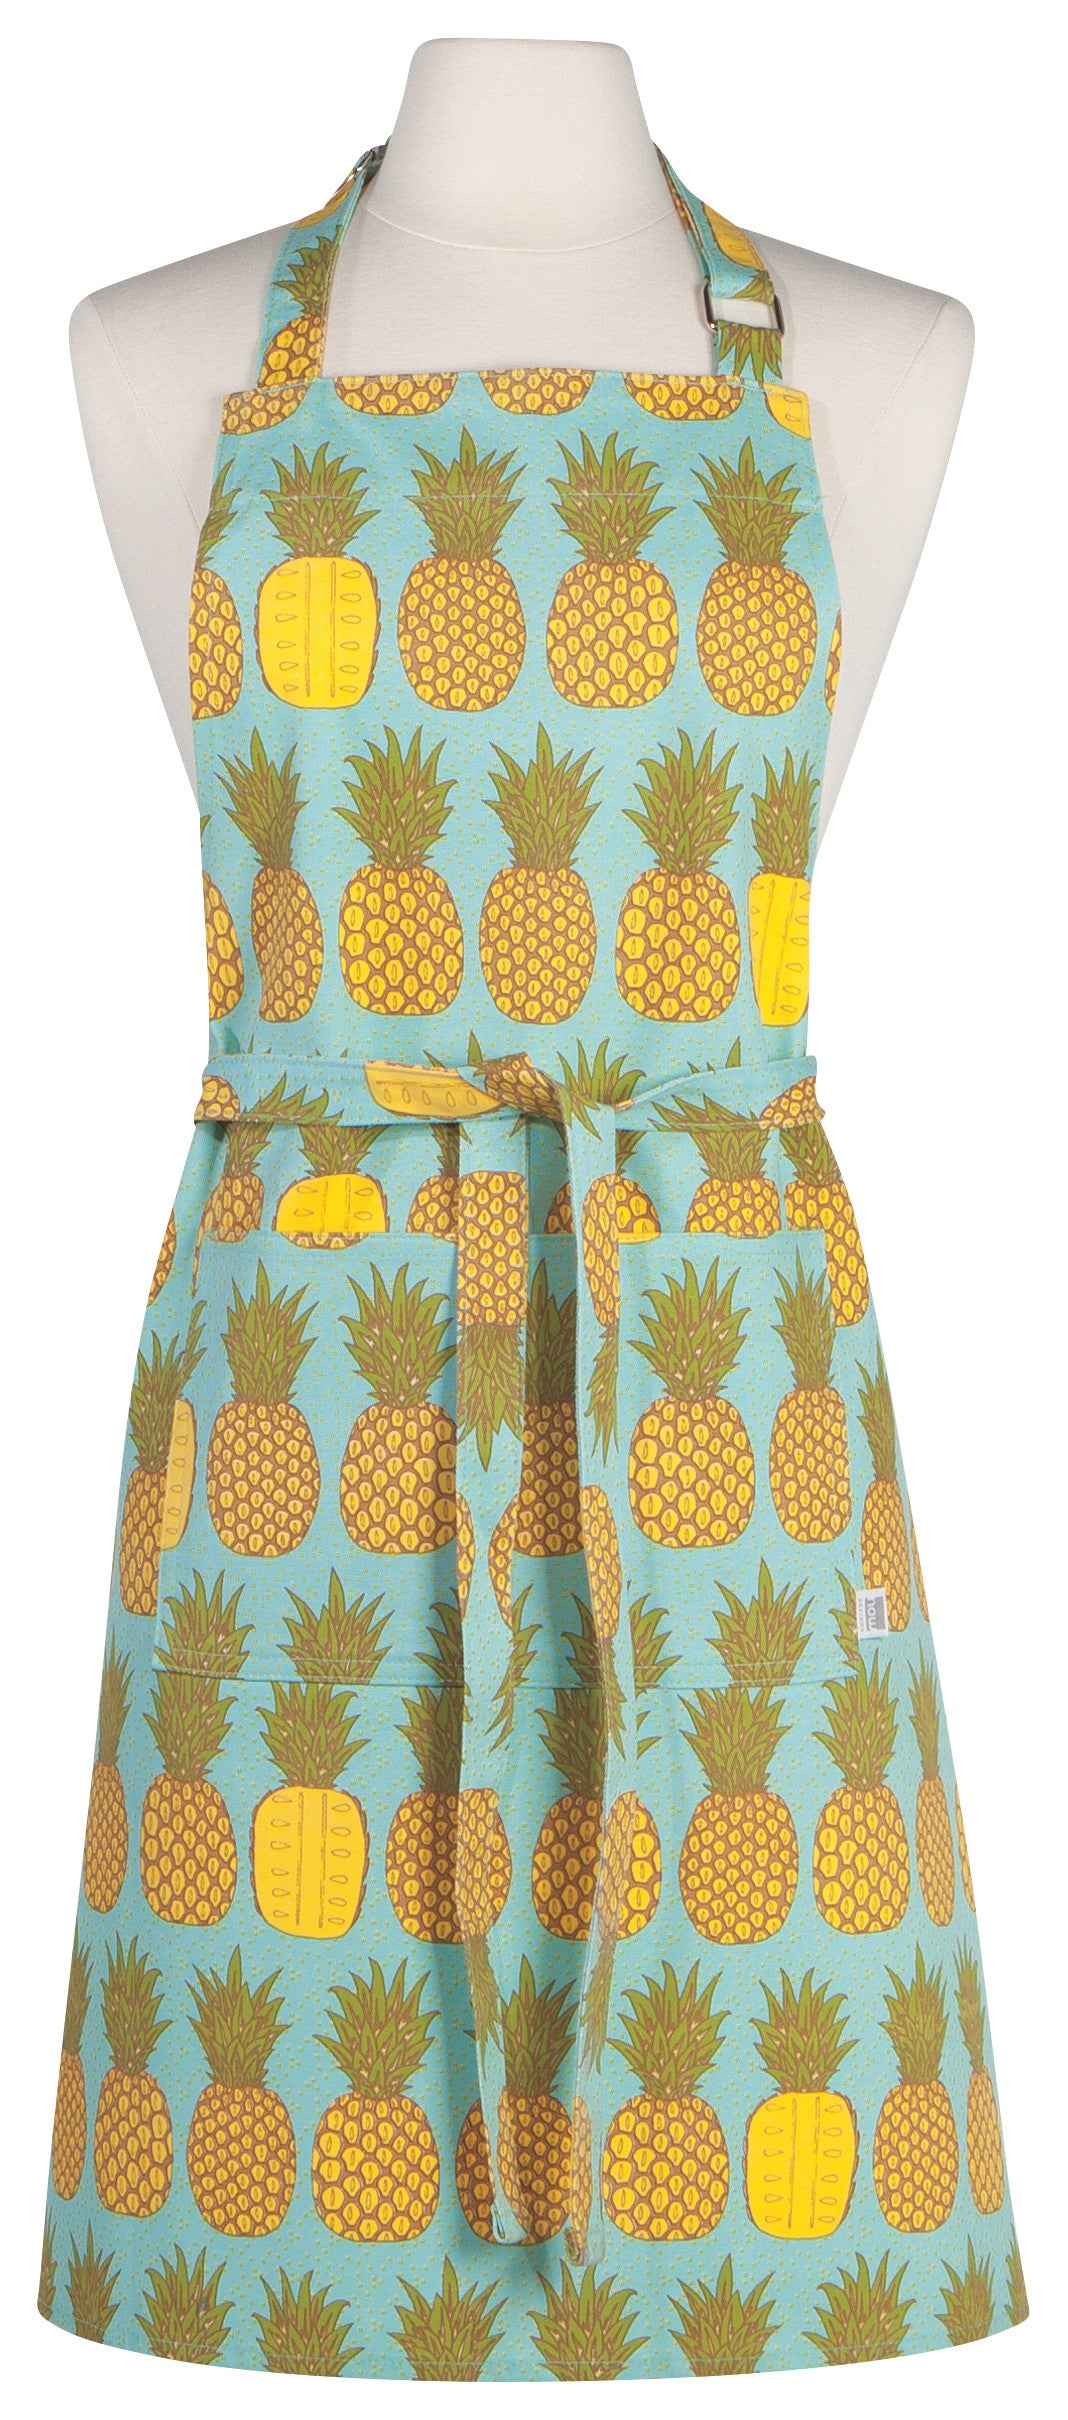 Chef Apron - Pineapples